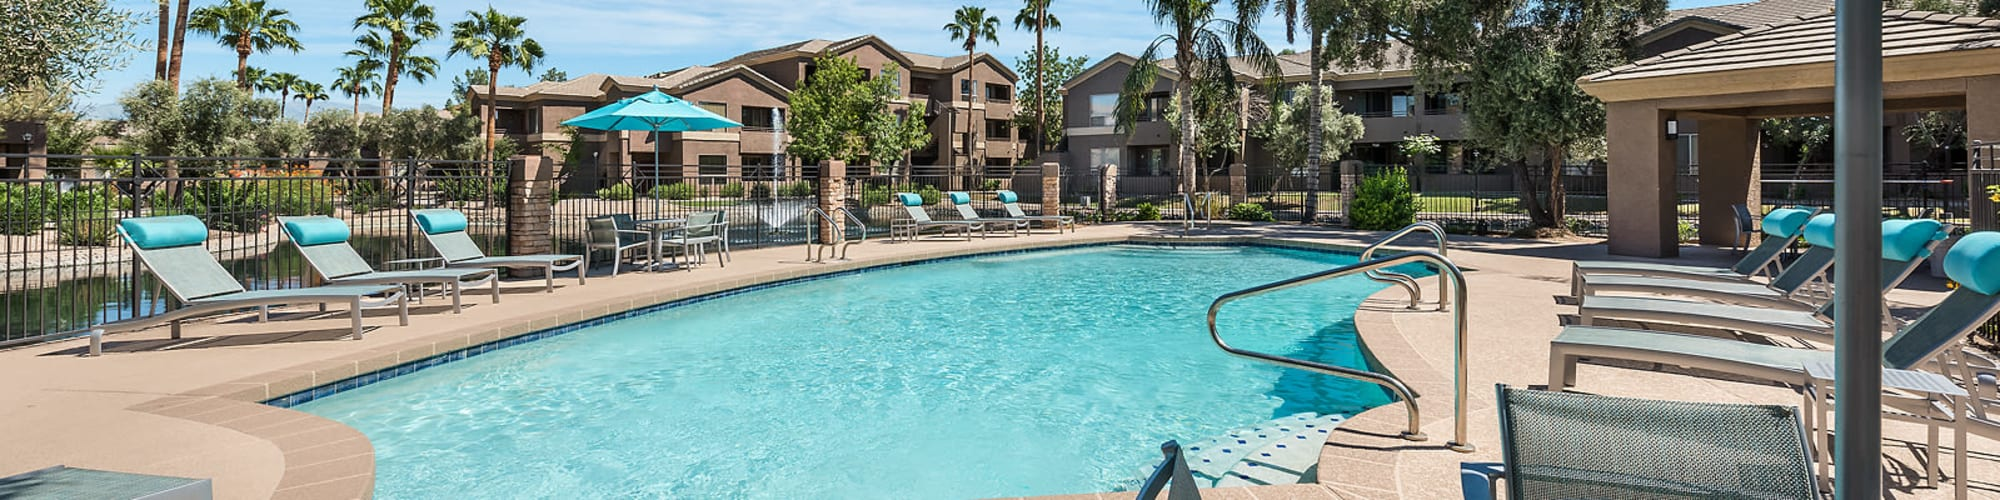 Amenities at Laguna at Arrowhead Ranch in Glendale, Arizona